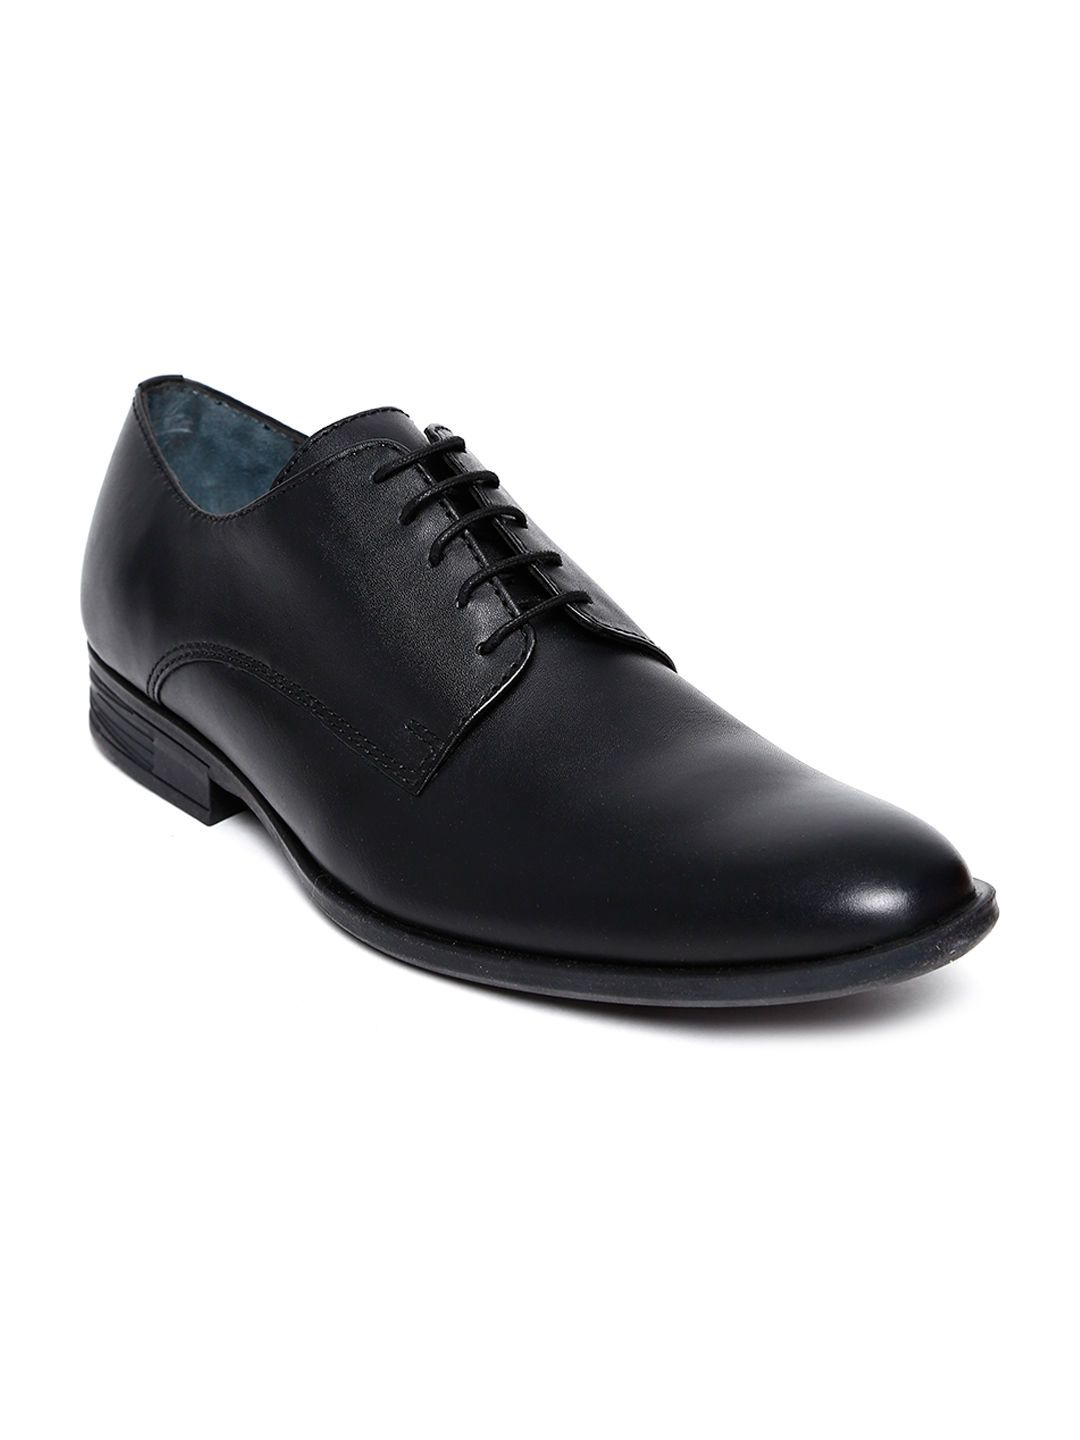 Hush Puppies By Bata Men Black Leather Formal Shoes Leather Formal Shoes Formal Shoes Hush Puppies Shoes